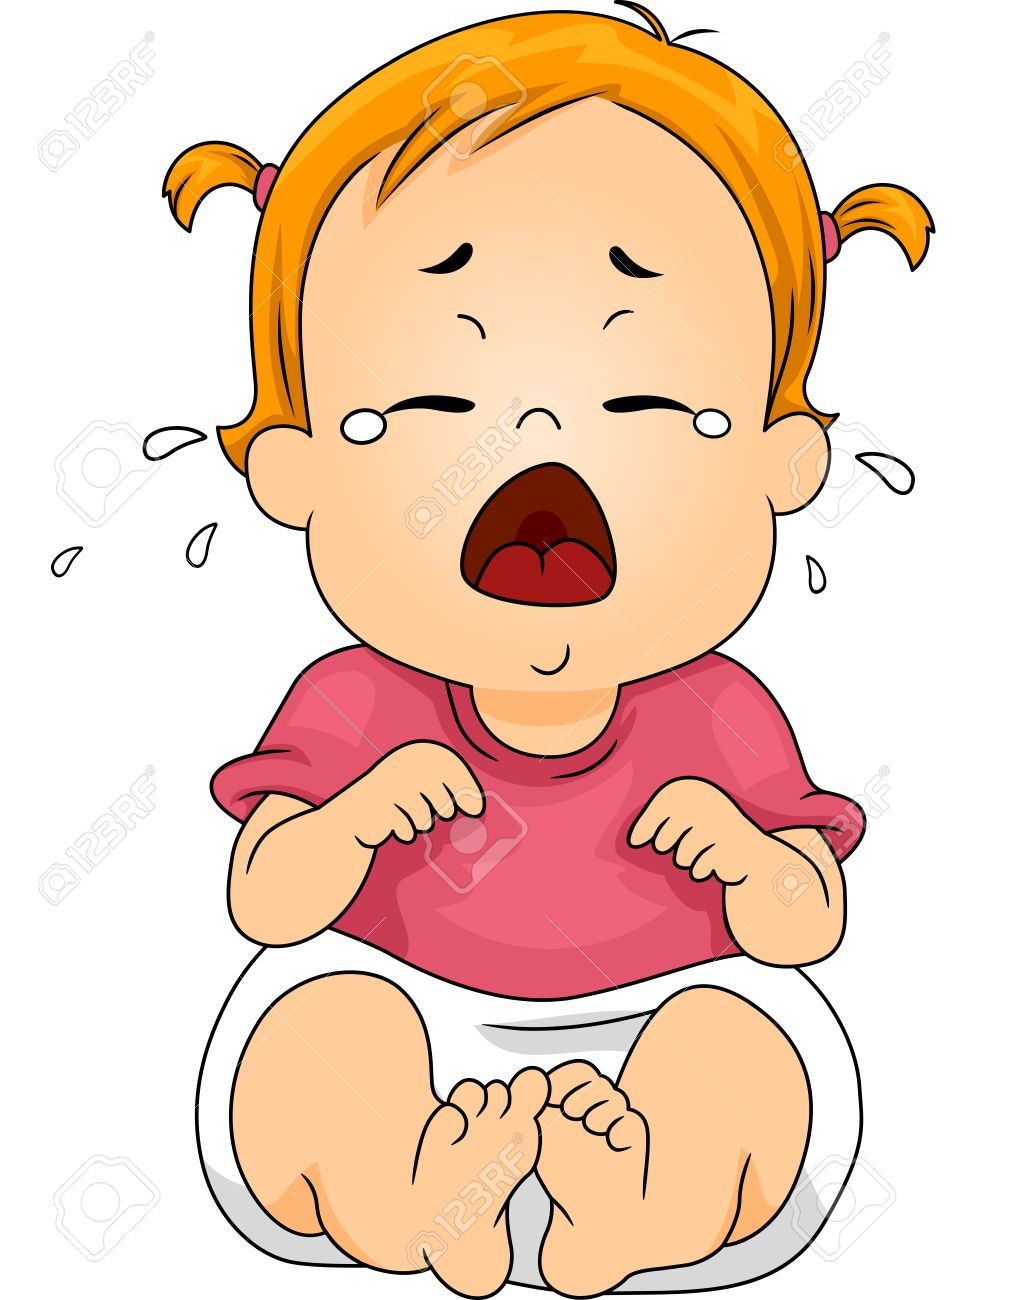 illustration featuring a baby crying out loud royalty free cliparts rh 123rf com baby girl crying clipart crying baby cartoon clipart